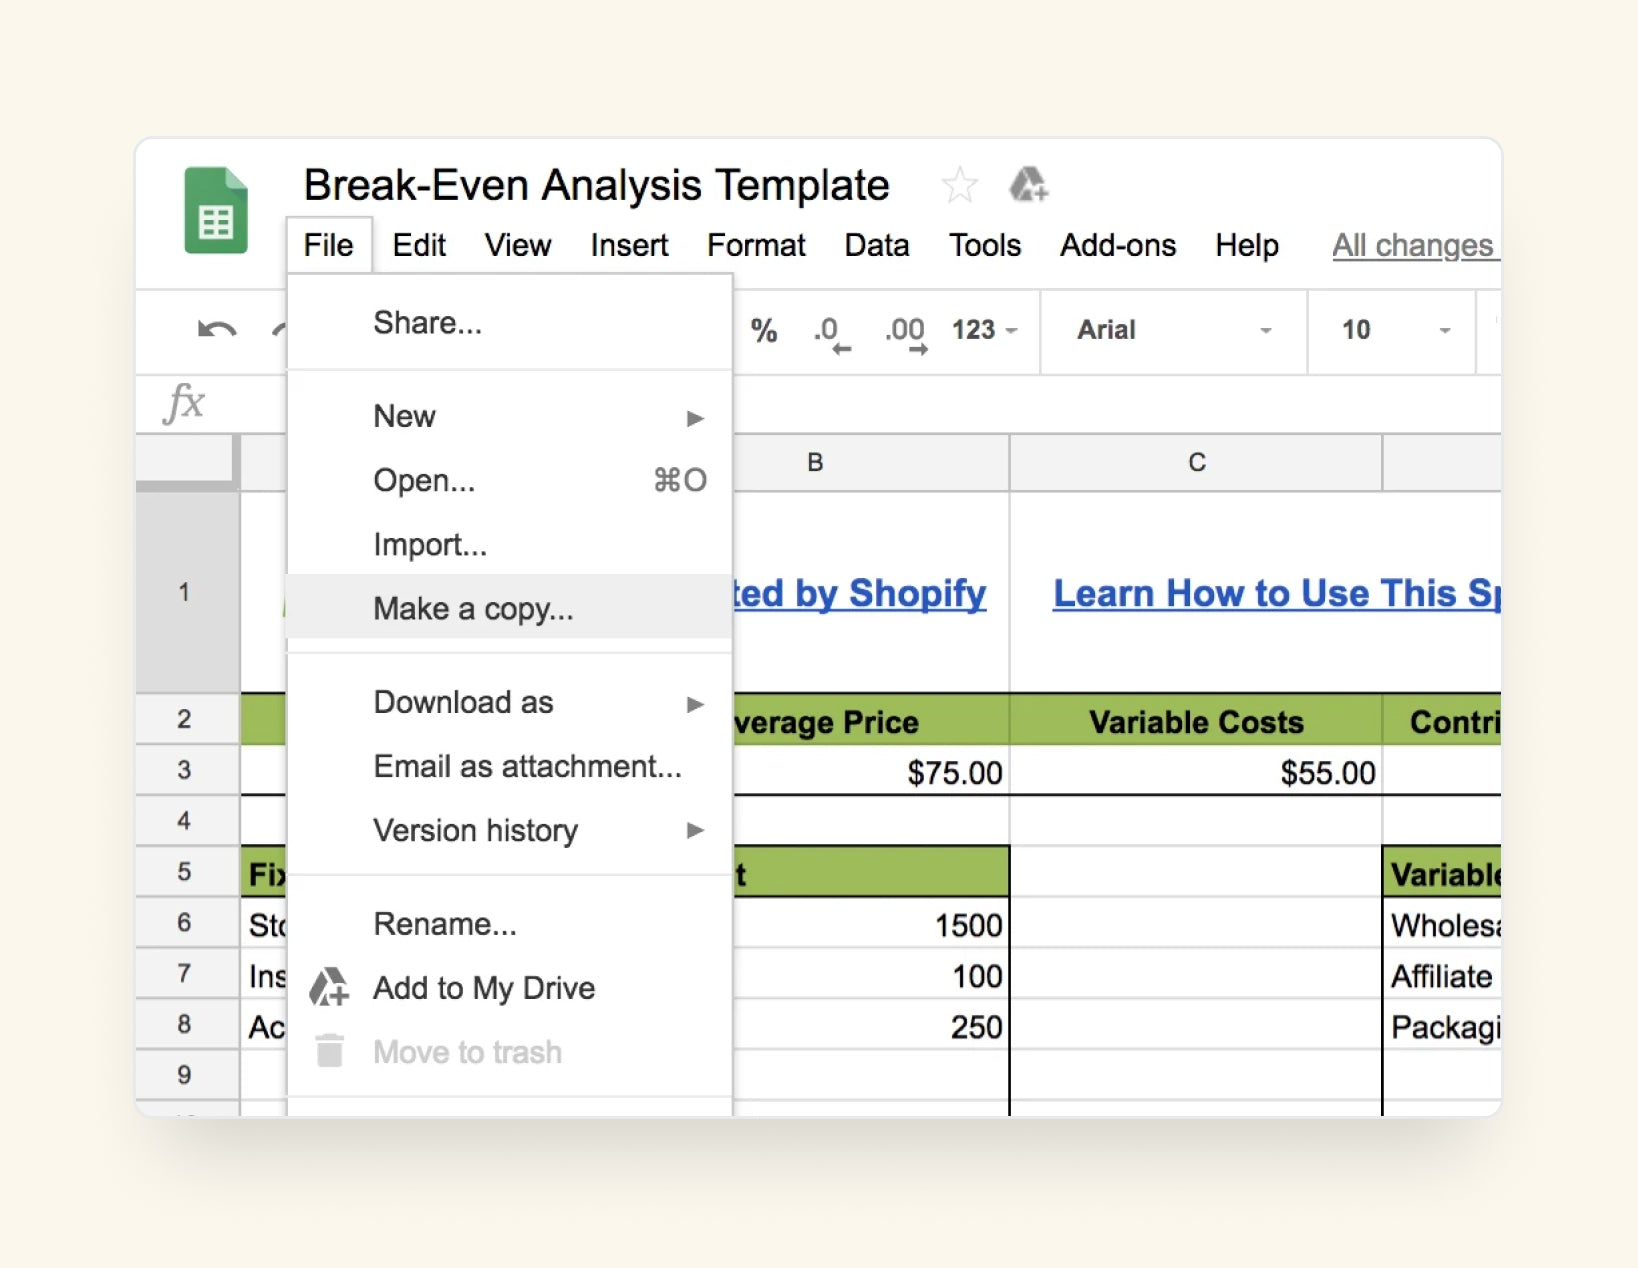 making copy of break even analysis template